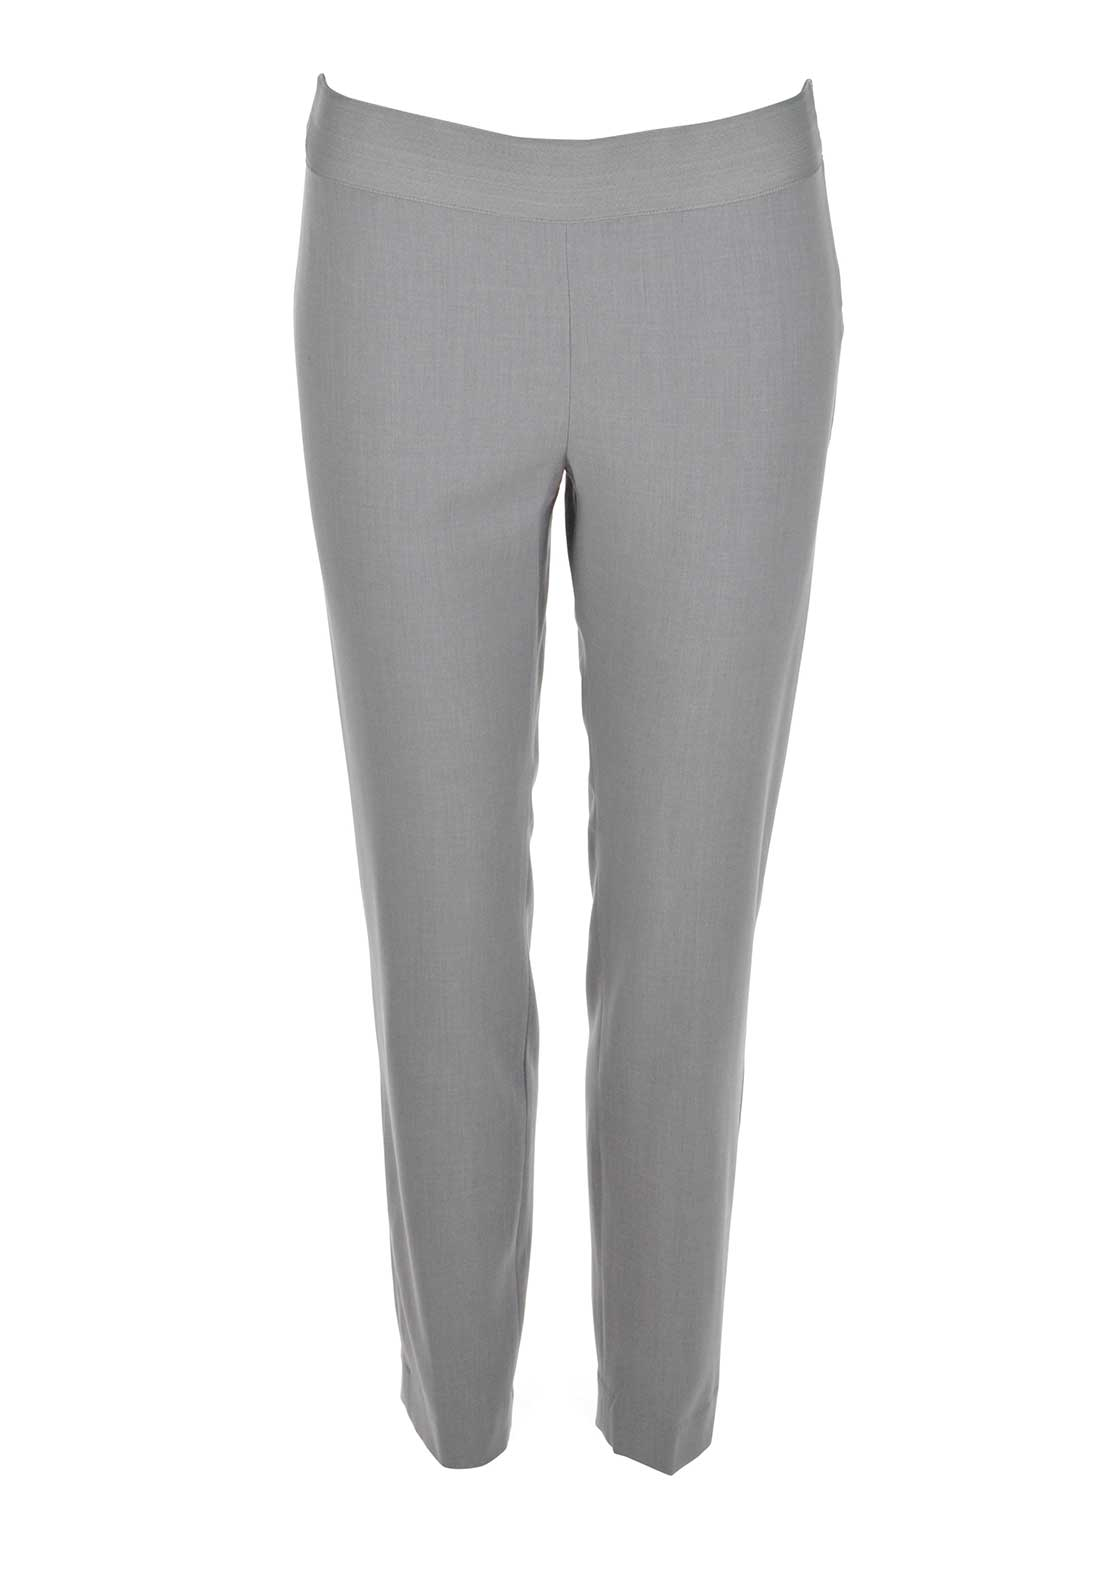 Vero Moda Rise 7/8 Cigarette Trousers, Light Grey Melange